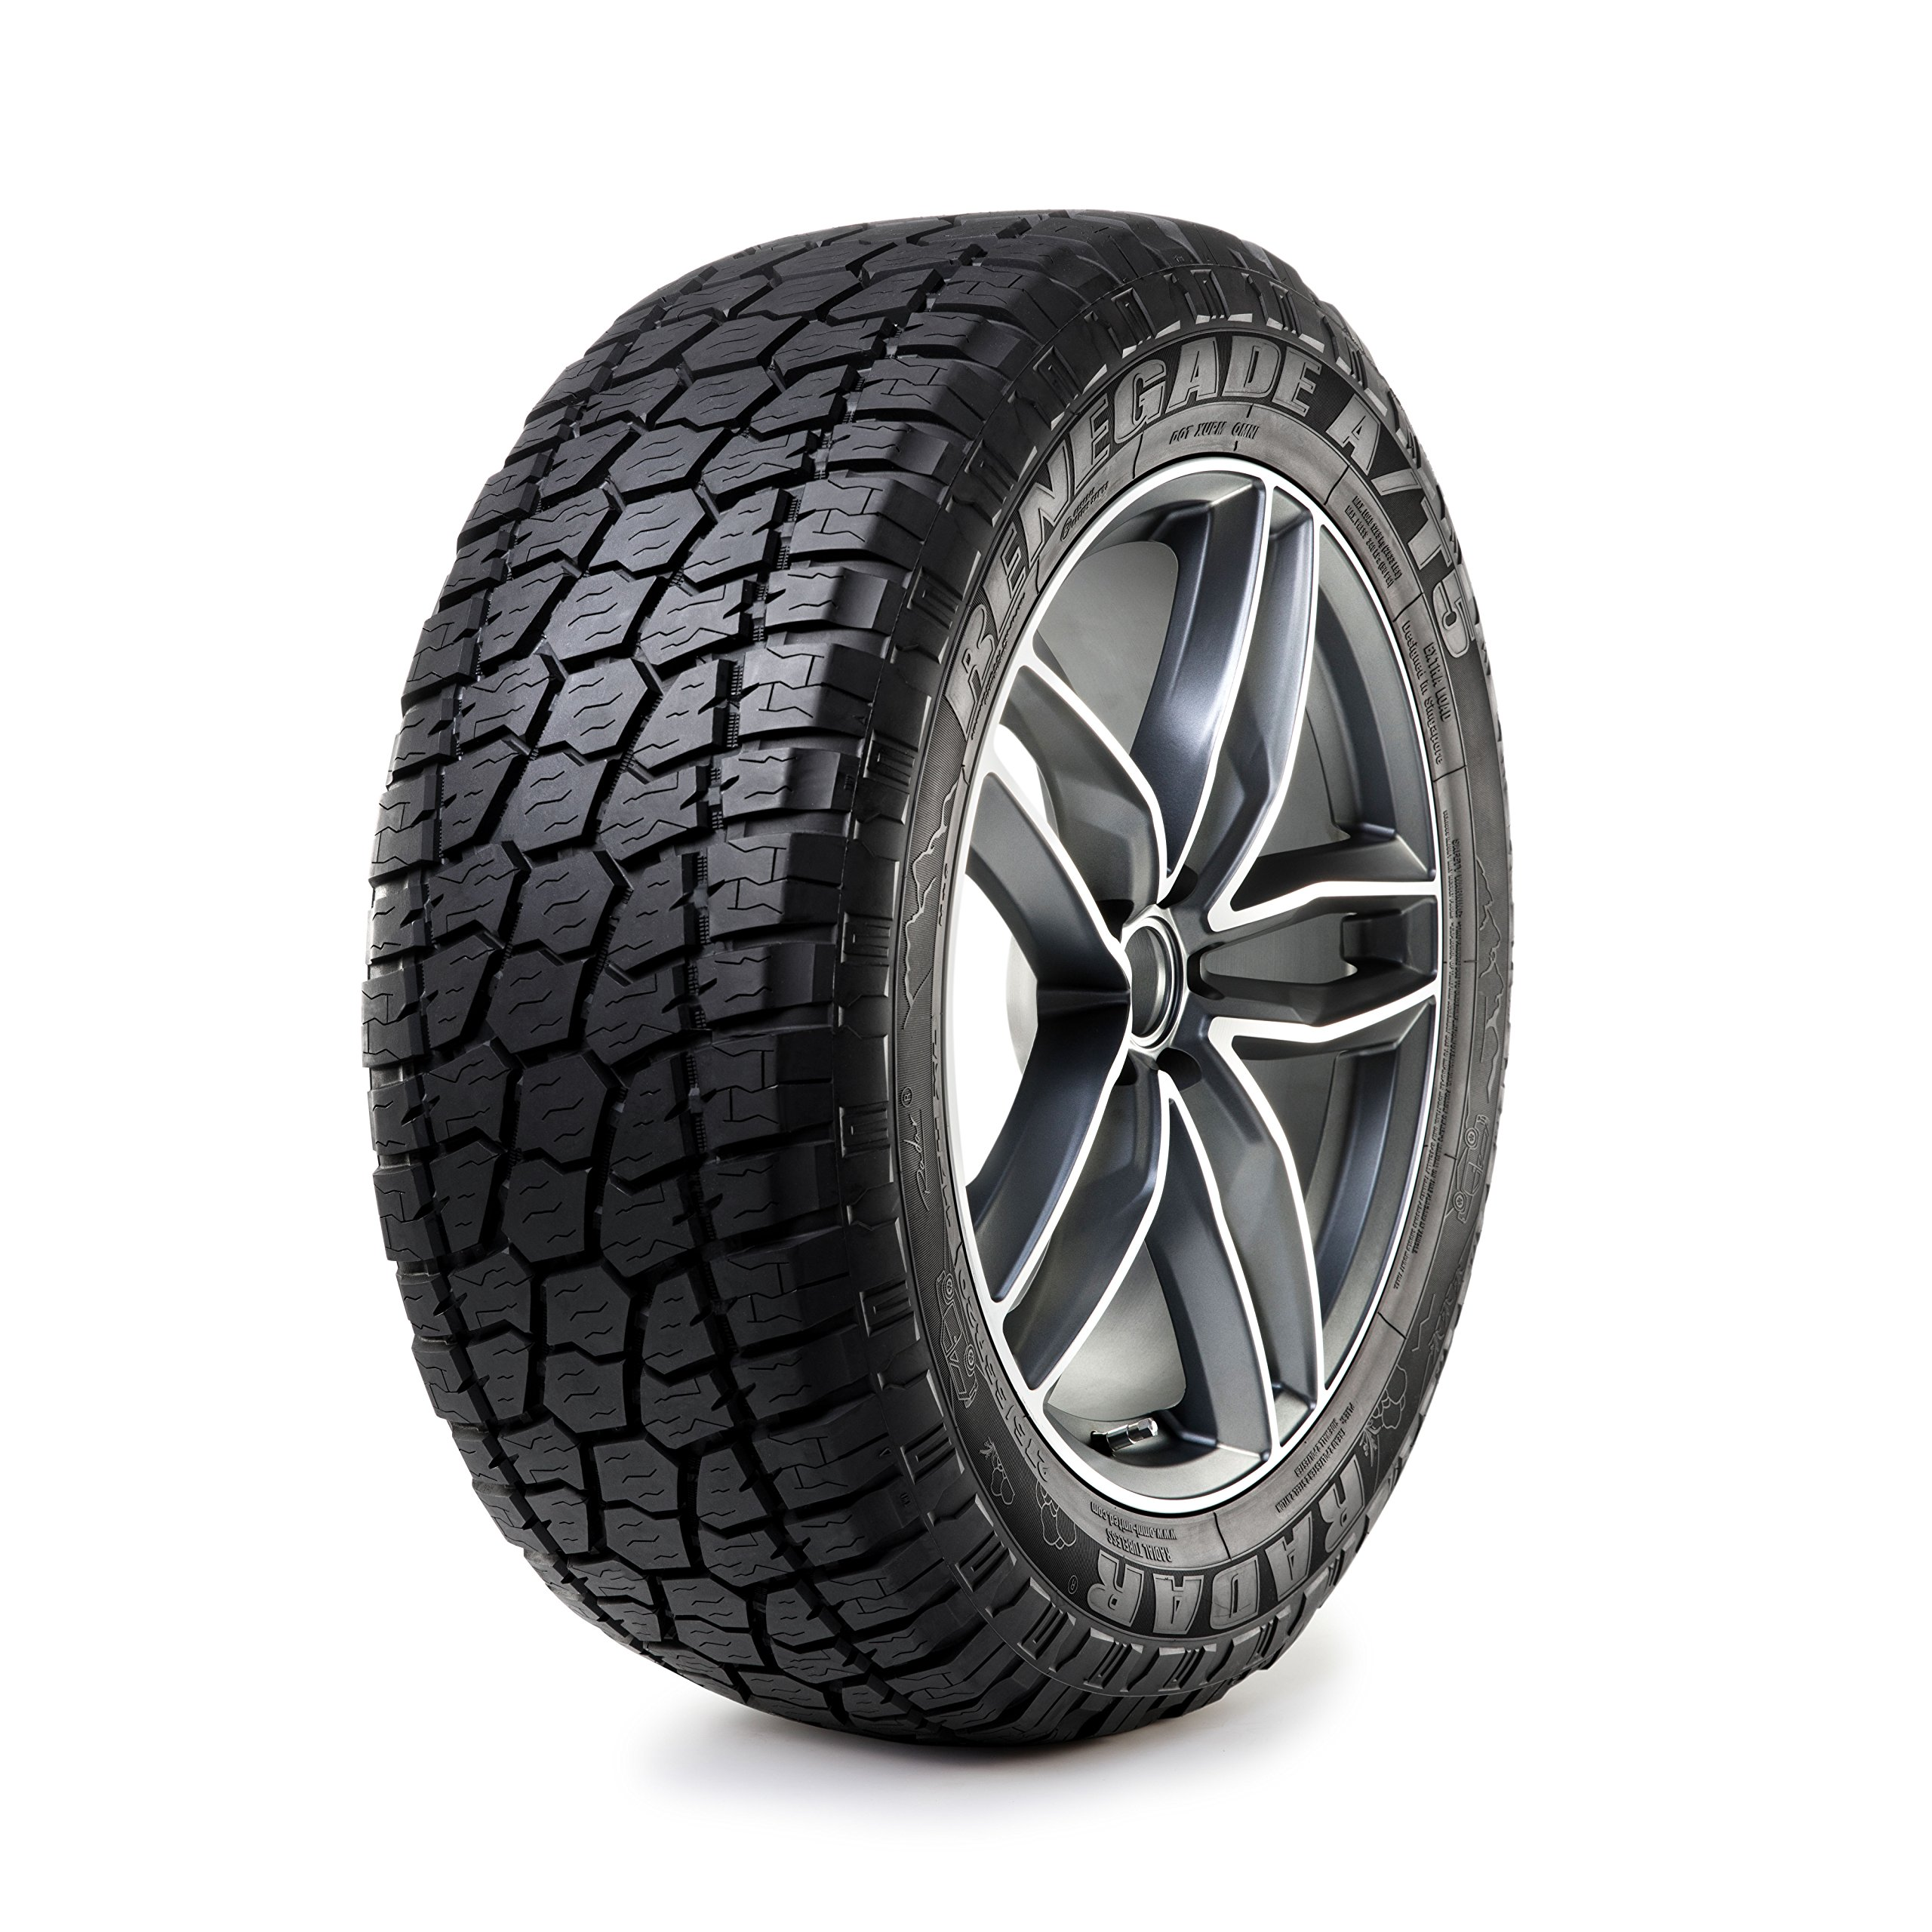 Radar Renegade A/T5 All-Season Radial Tire - LT265/70R17 121S